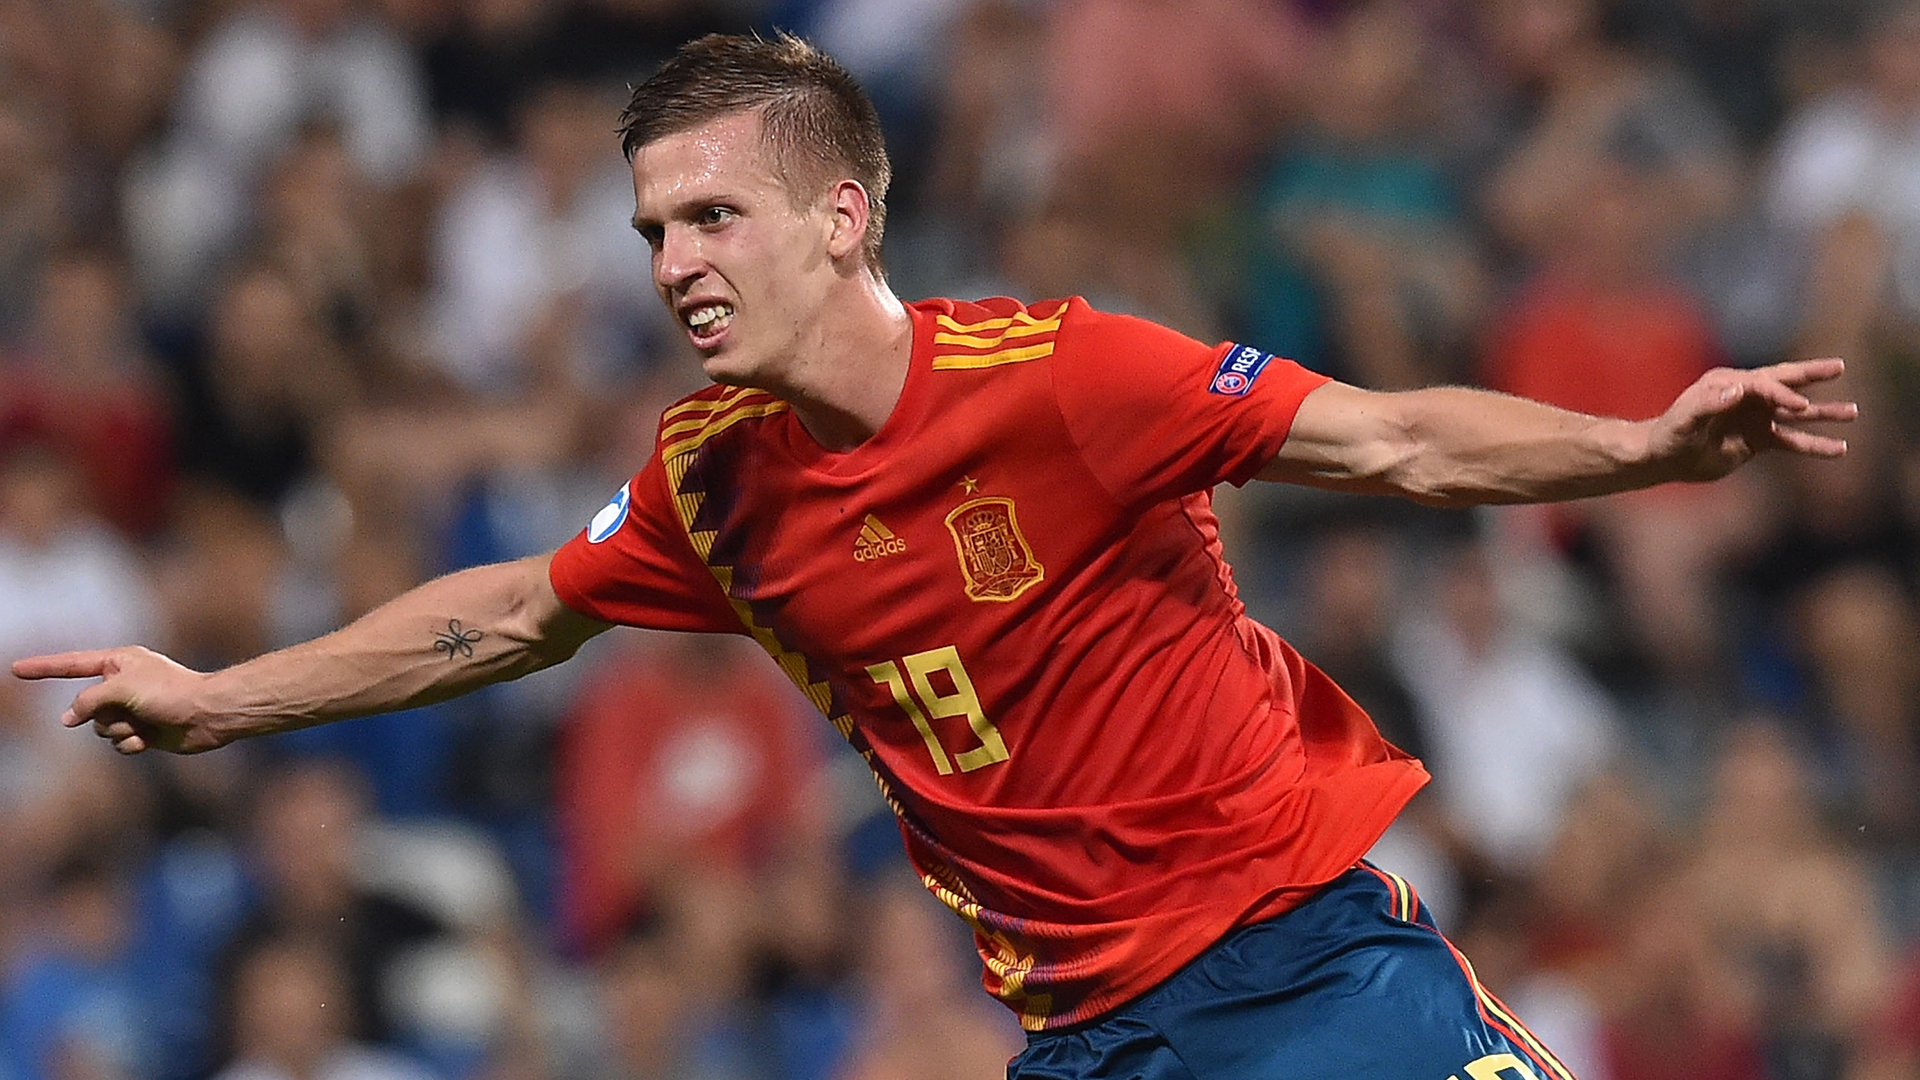 Dani Olmo handed maiden Spain call-up for final Euro 2020 qualifiers